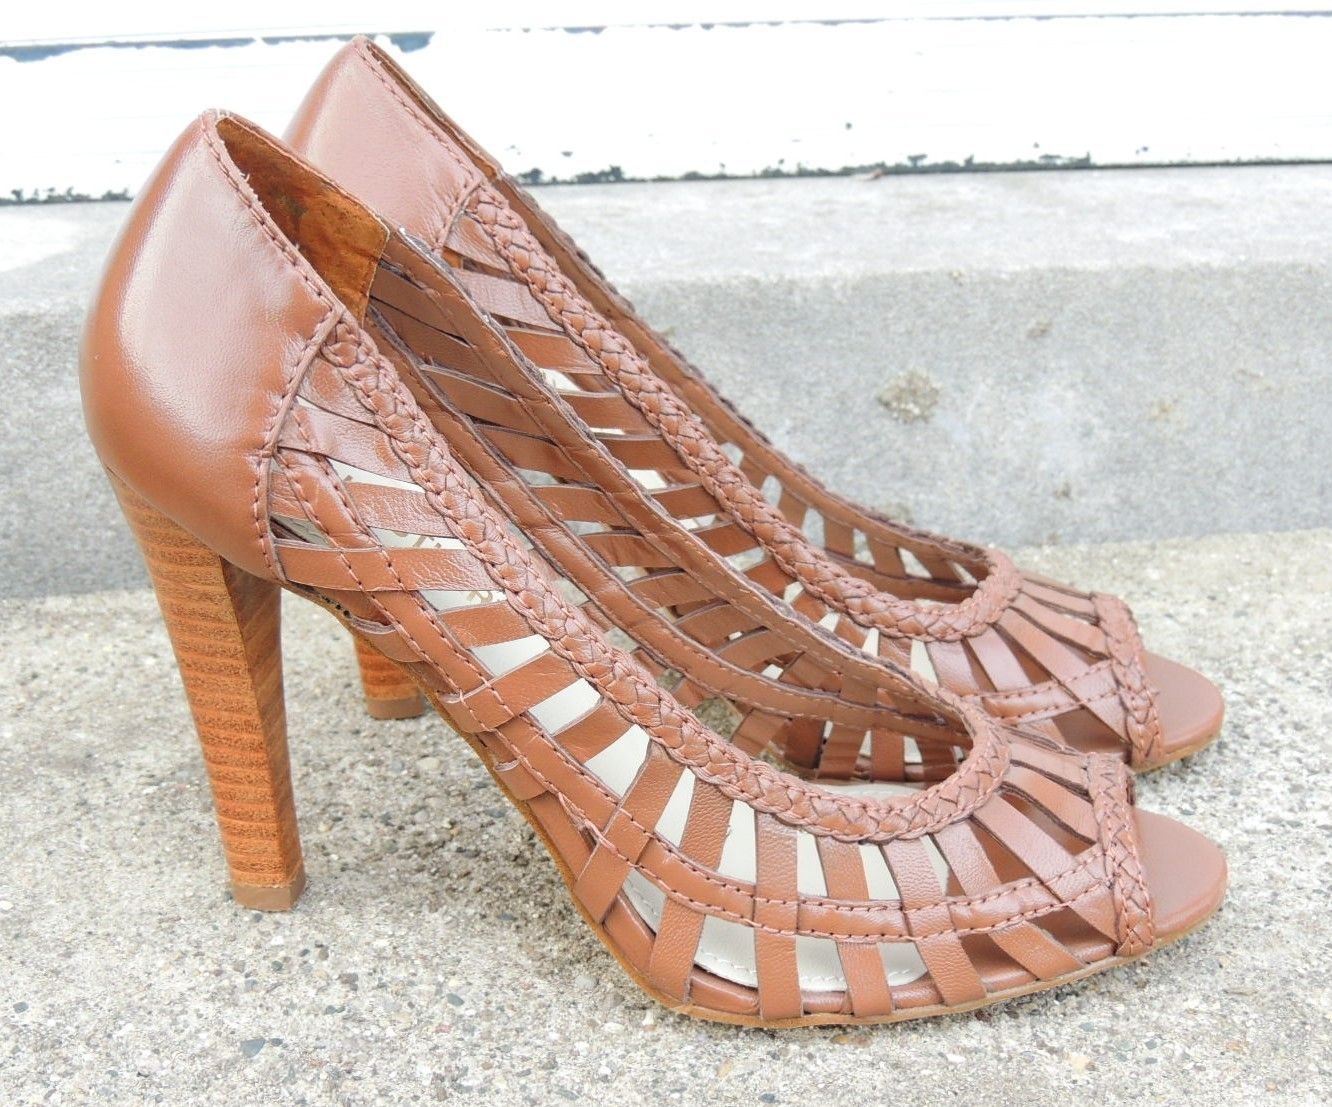 Vintage Colin Stuart Brown Leather Peep Toe High Heels/Brown Perforated all Leather Size 8M Shoes/Women Leather 4 inch heel Open Toe Shoes